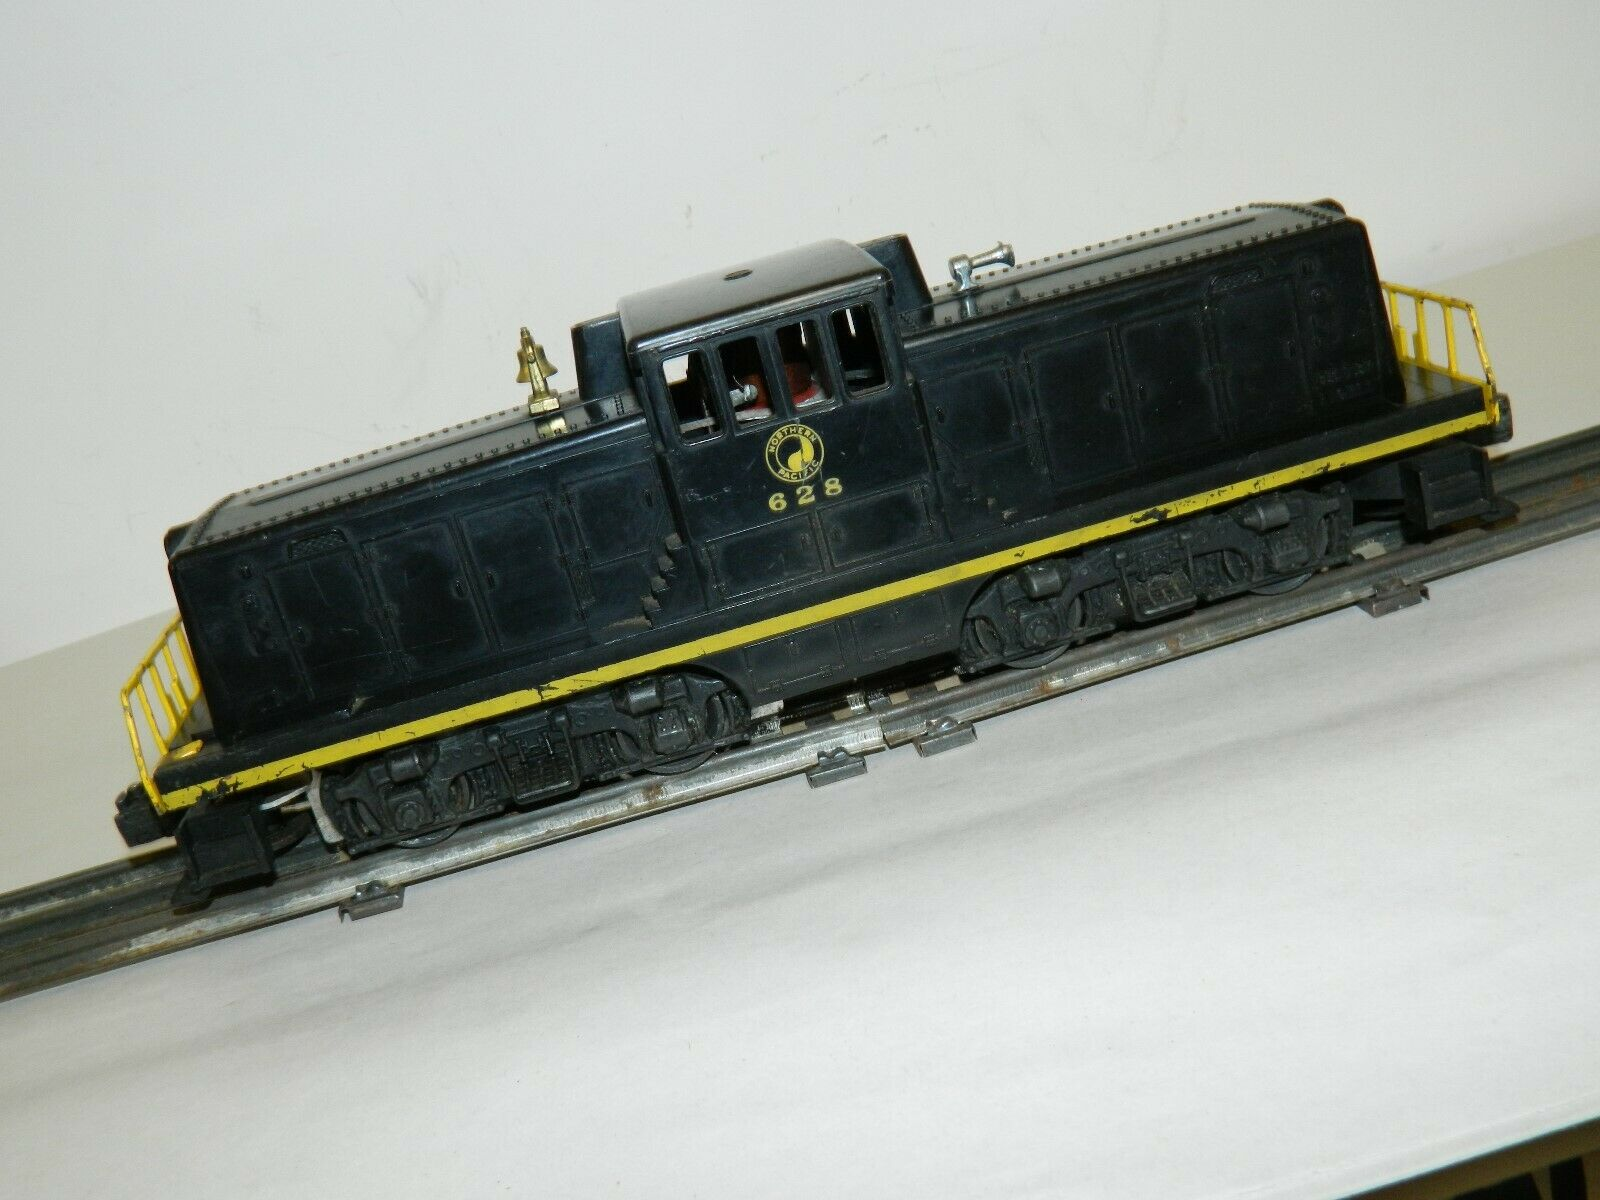 Vintage Original Lionel 628 Northern Pacific 44 ton Diesel Locomotive Runs Great